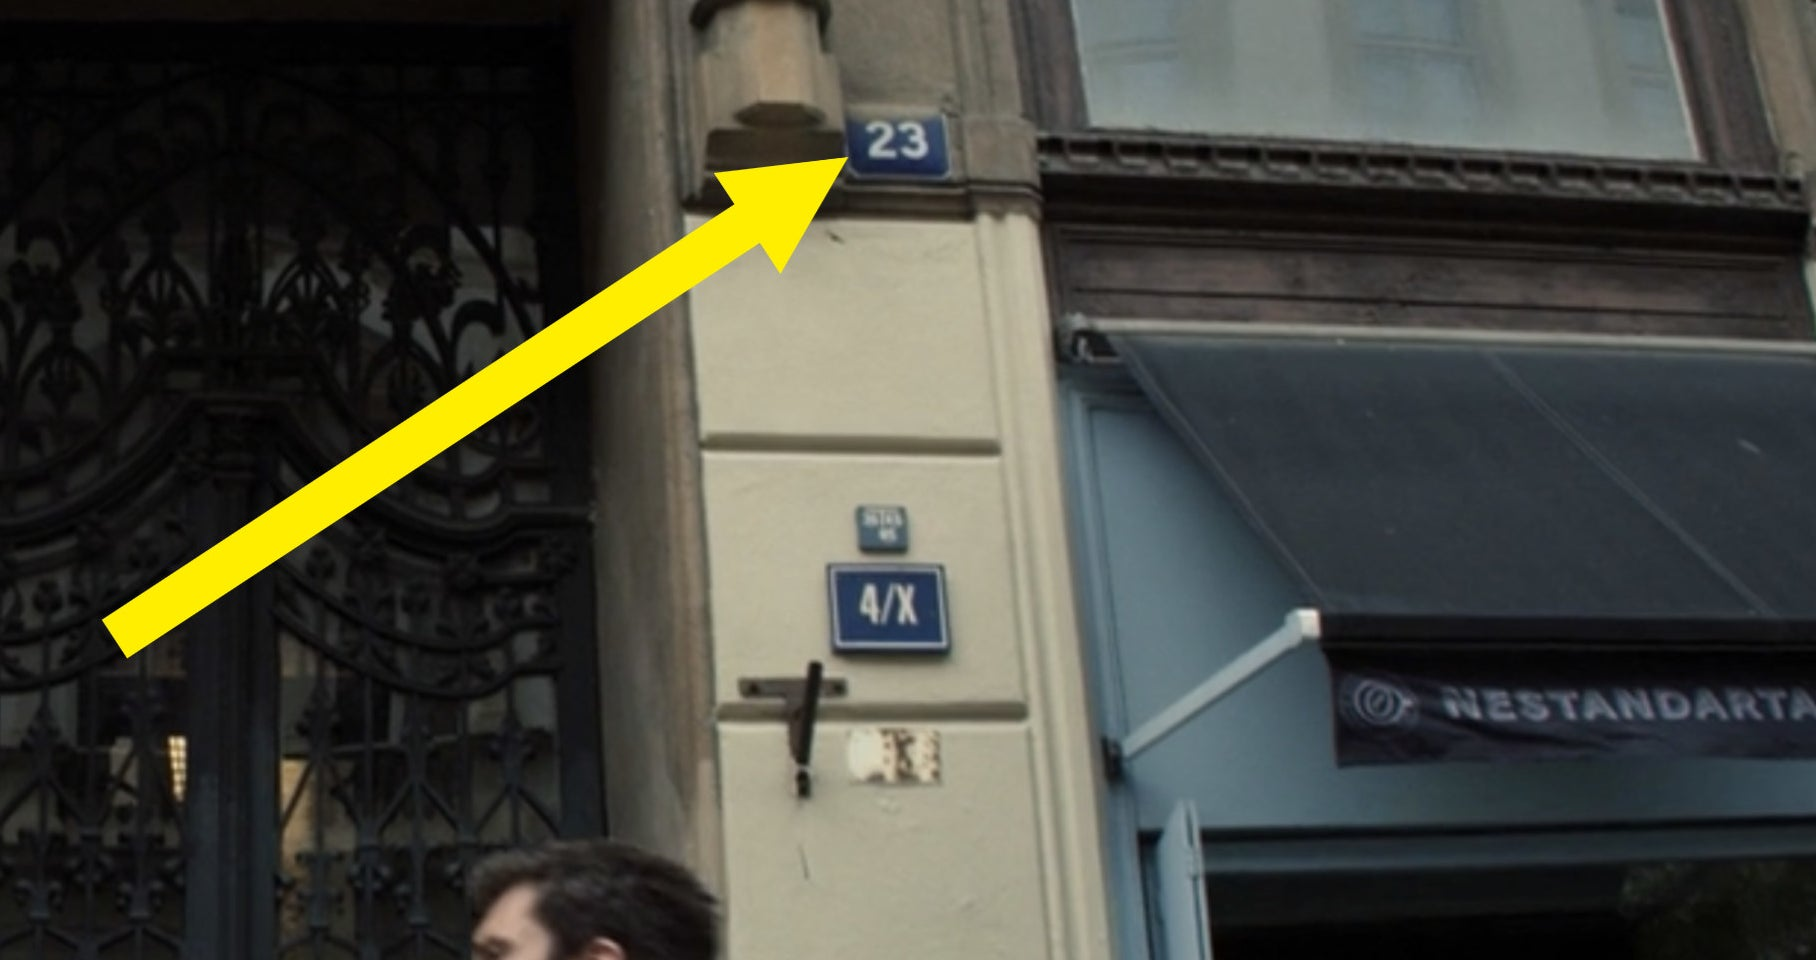 """A yellow arrow pointing to """"23"""" on a building"""